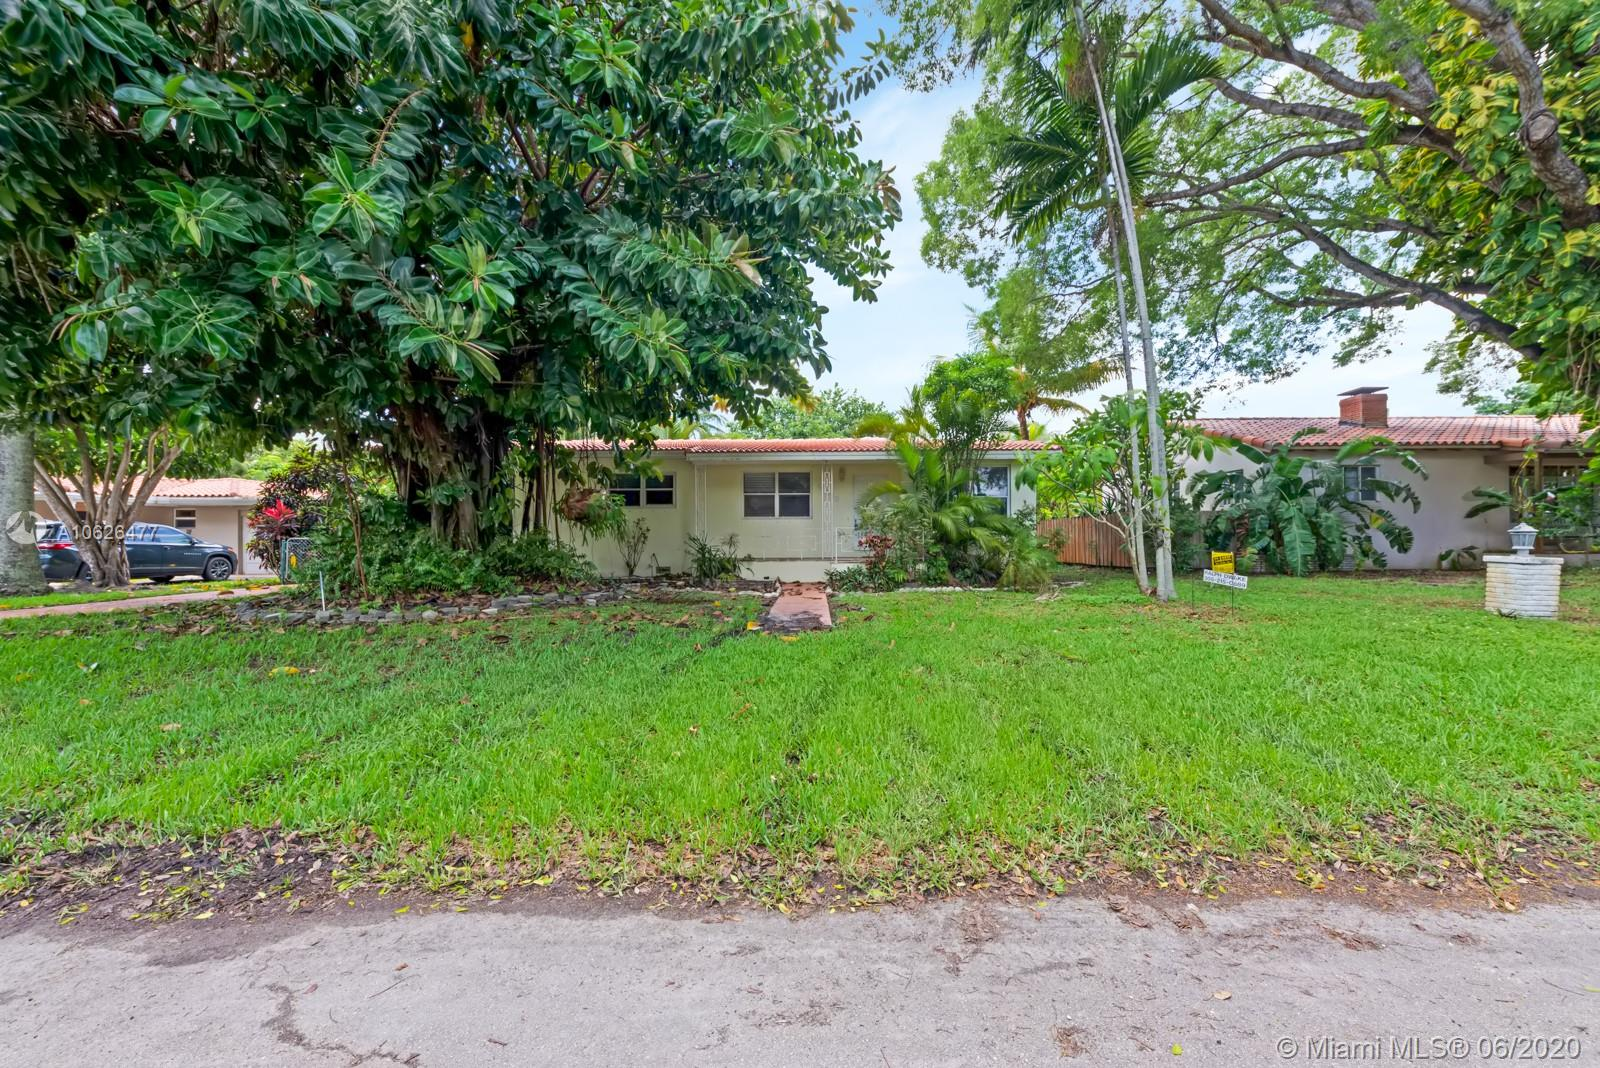 10658 NE 11th Ct 33138 - One of Miami Shores Homes for Sale